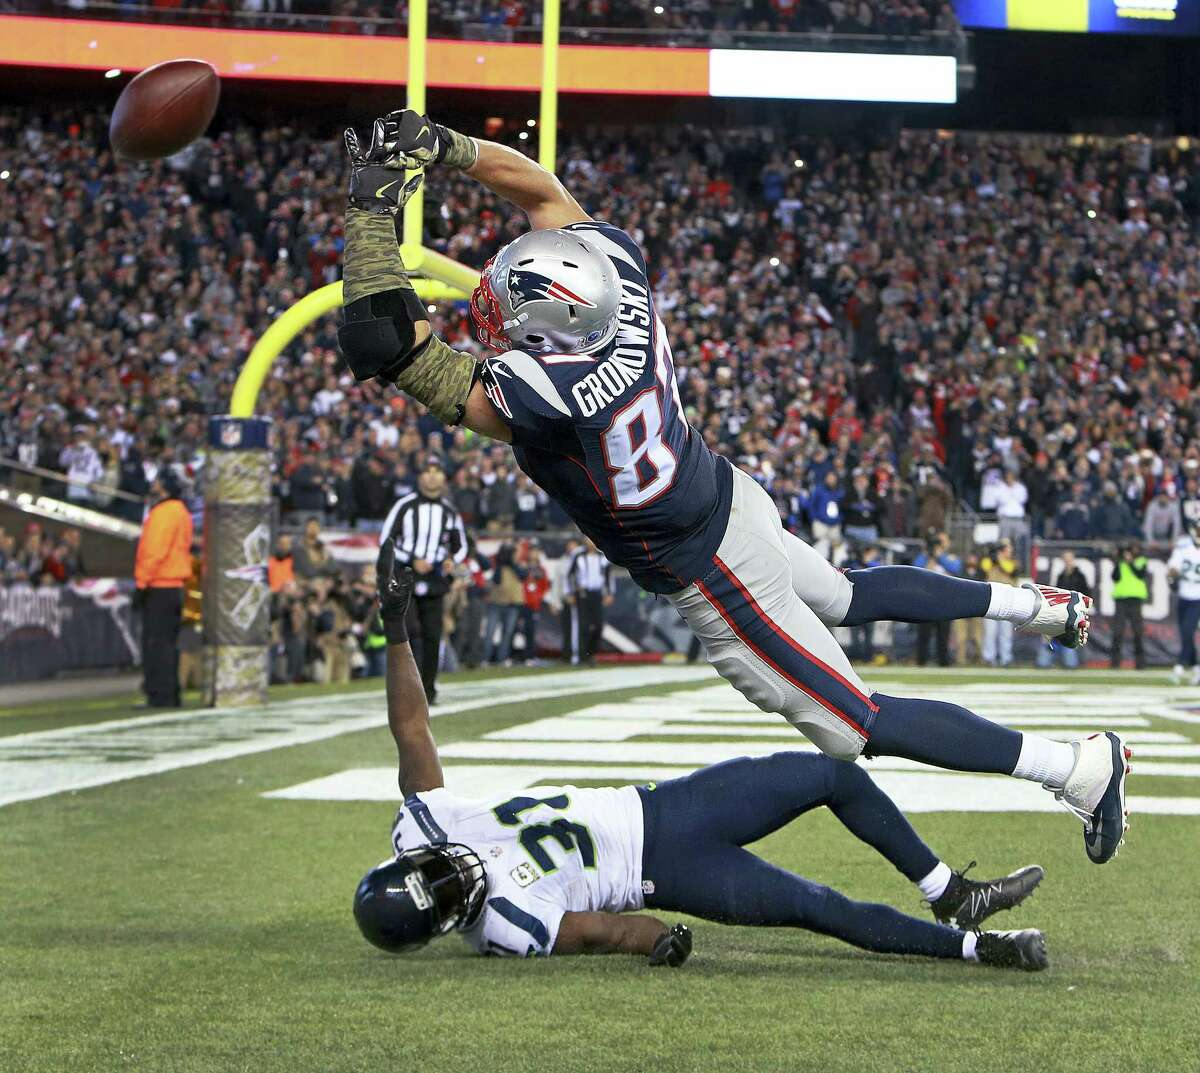 New England Patriots tight end Rob Gronkowski (87) can't catch a pass in the end zone over Seattle Seahawks safety Kam Chancellor (31) at the end of an NFL football game on Sunday, Nov. 13, 2016 in Foxborough, Mass.